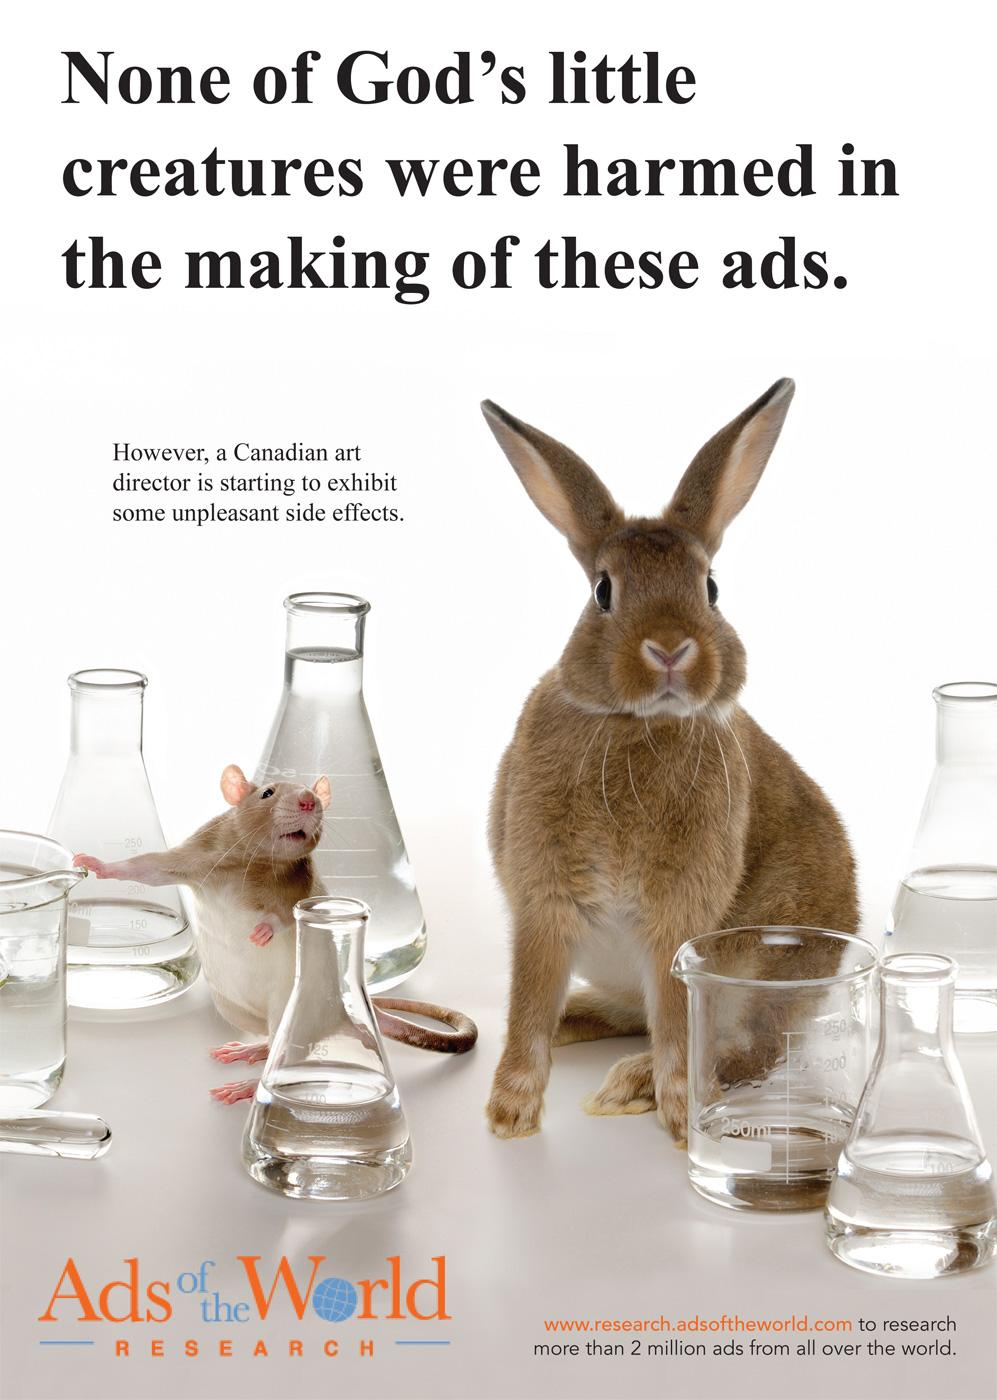 Ads of the World Print Ad -  Rabbit